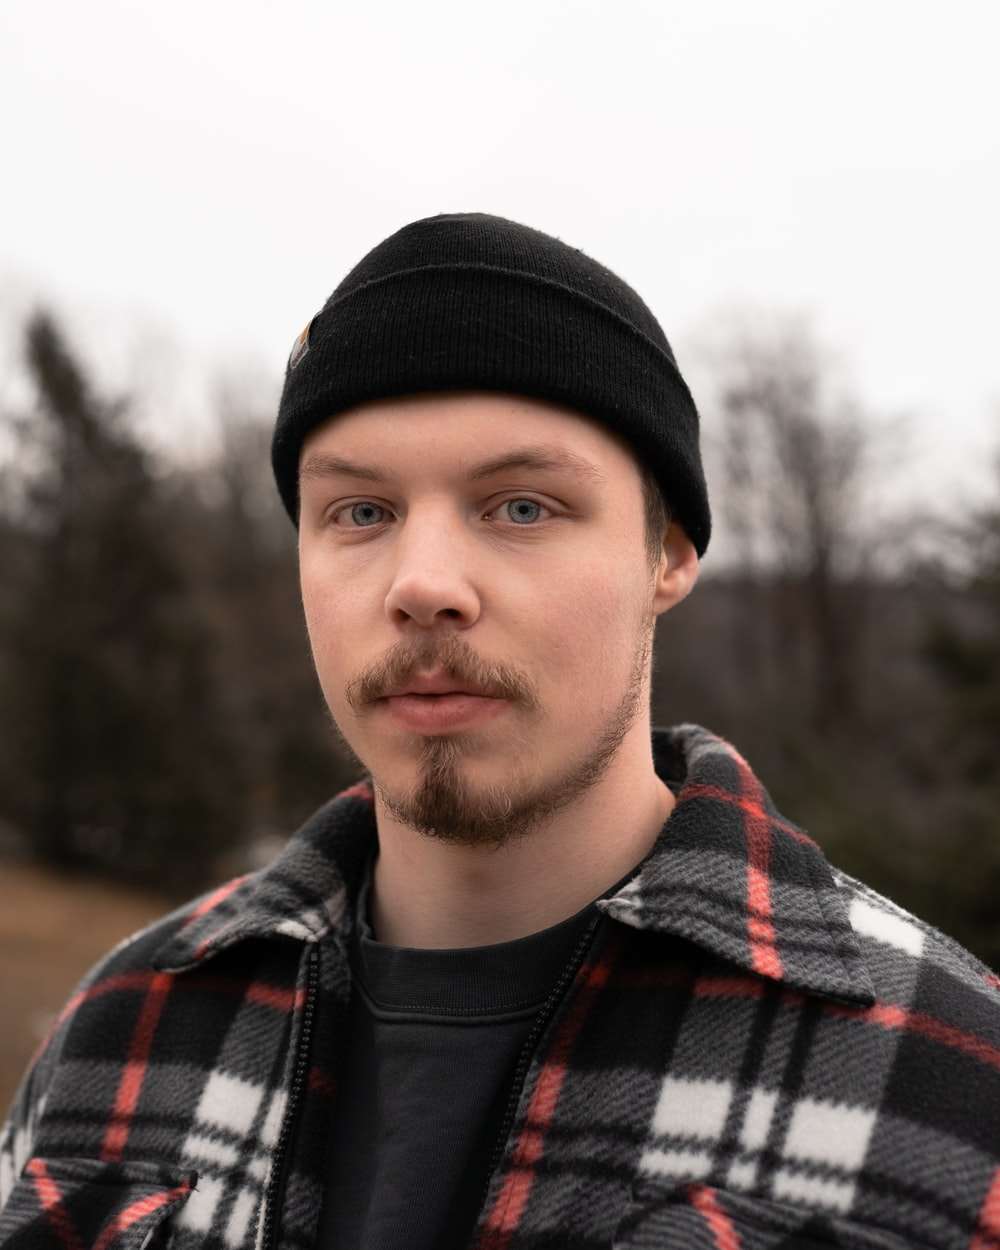 man in black knit cap and black red and white plaid jacket